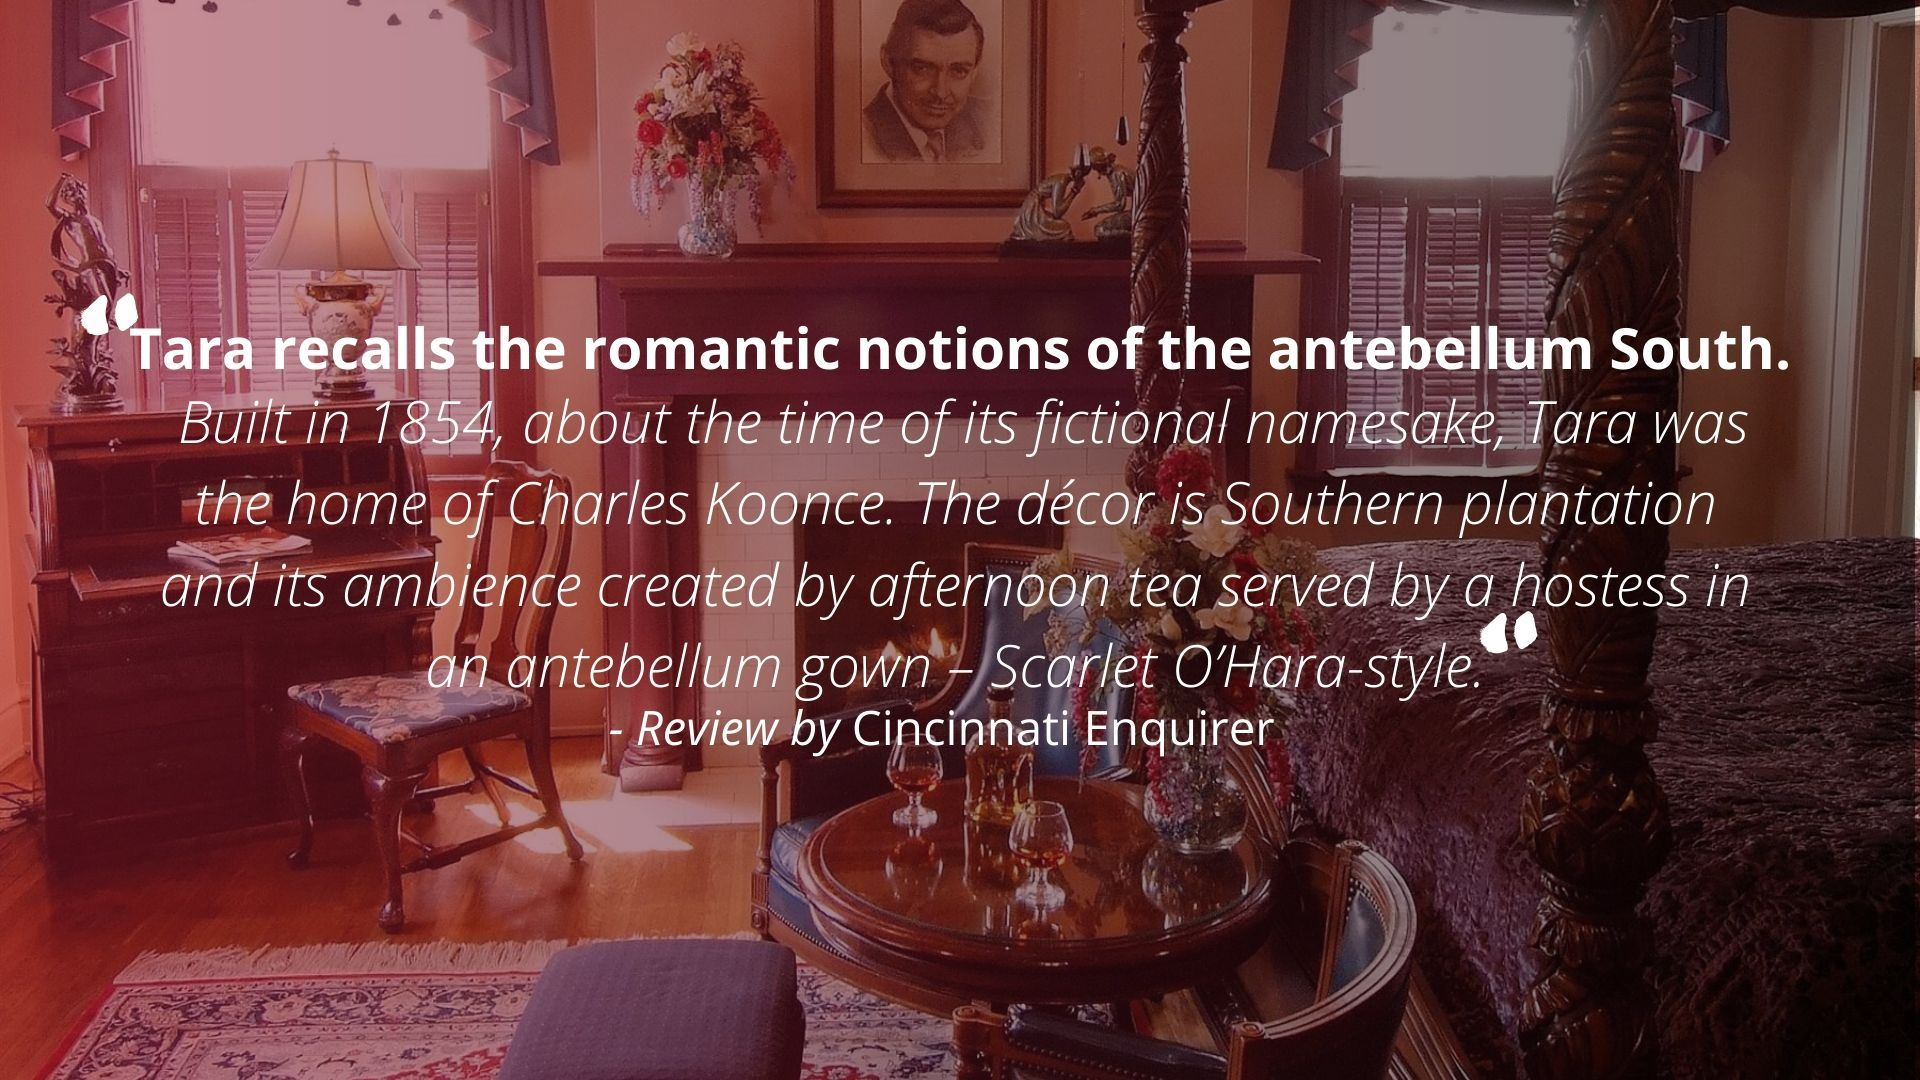 """Tara recalls the romantic notions of the antebellum South. Built in 1854, about the time of its fictional namesake, Tara was the home of Charles Koonce. The decor is Southern plantation and its ambience created by afternoon tea served by a hostess in an antebellum gown - Scarlet O'Hara-style."" - Review by Cincinnati Enquirer"